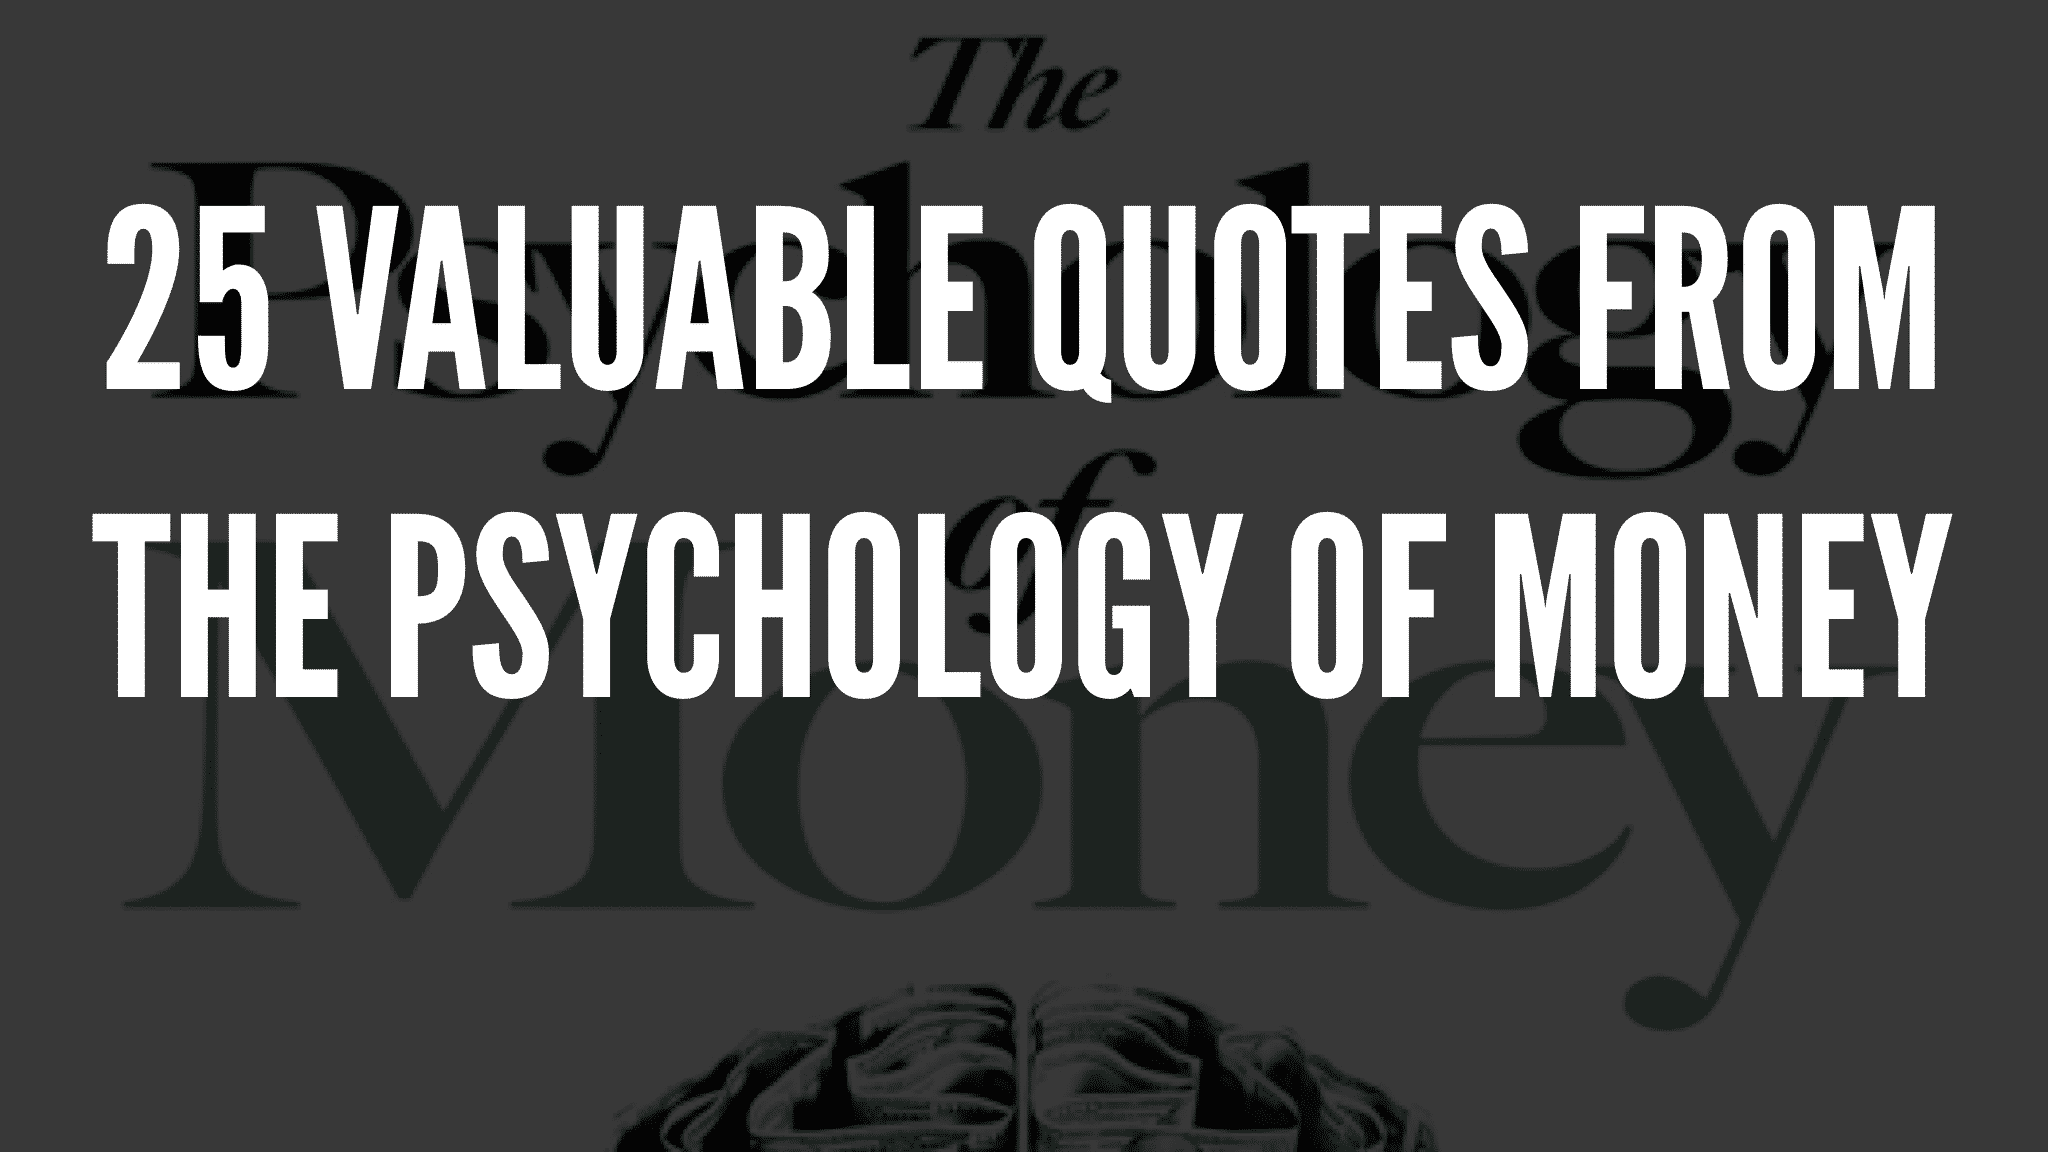 25 Valuable Quotes From The Psychology of Money